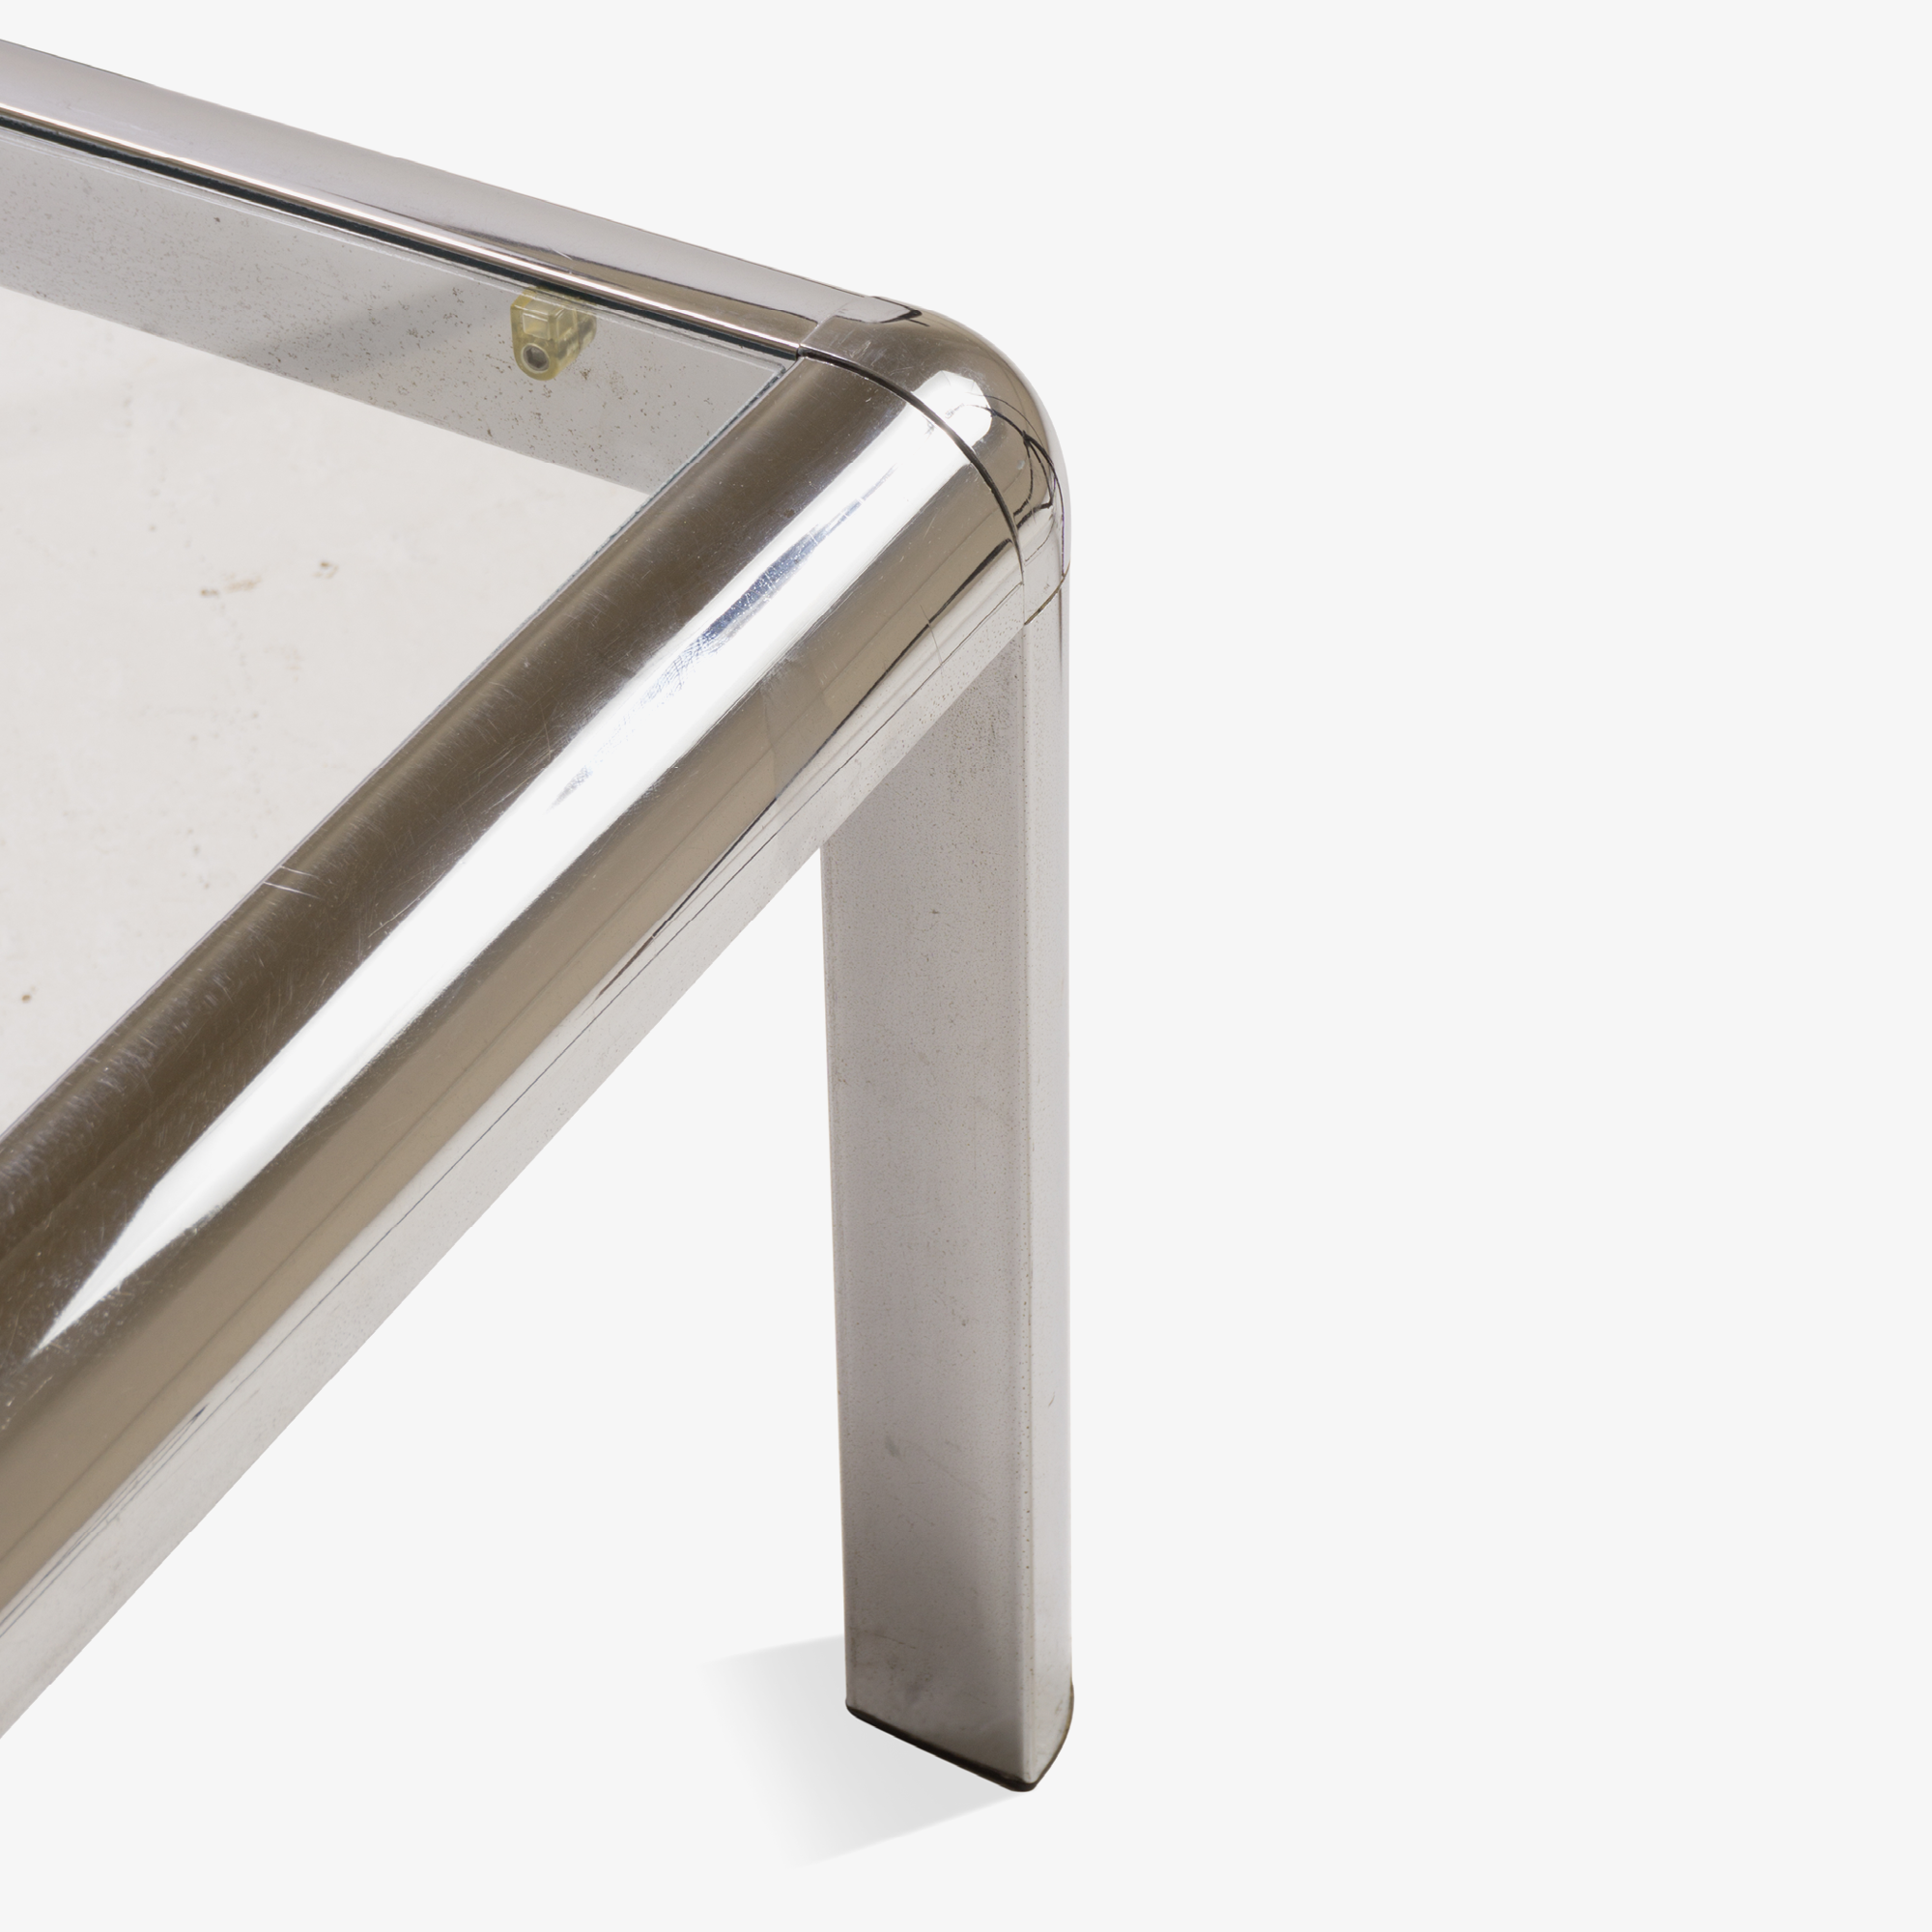 Mid-Century Square Chrome Cocktail Table with Rounded Frame3.png